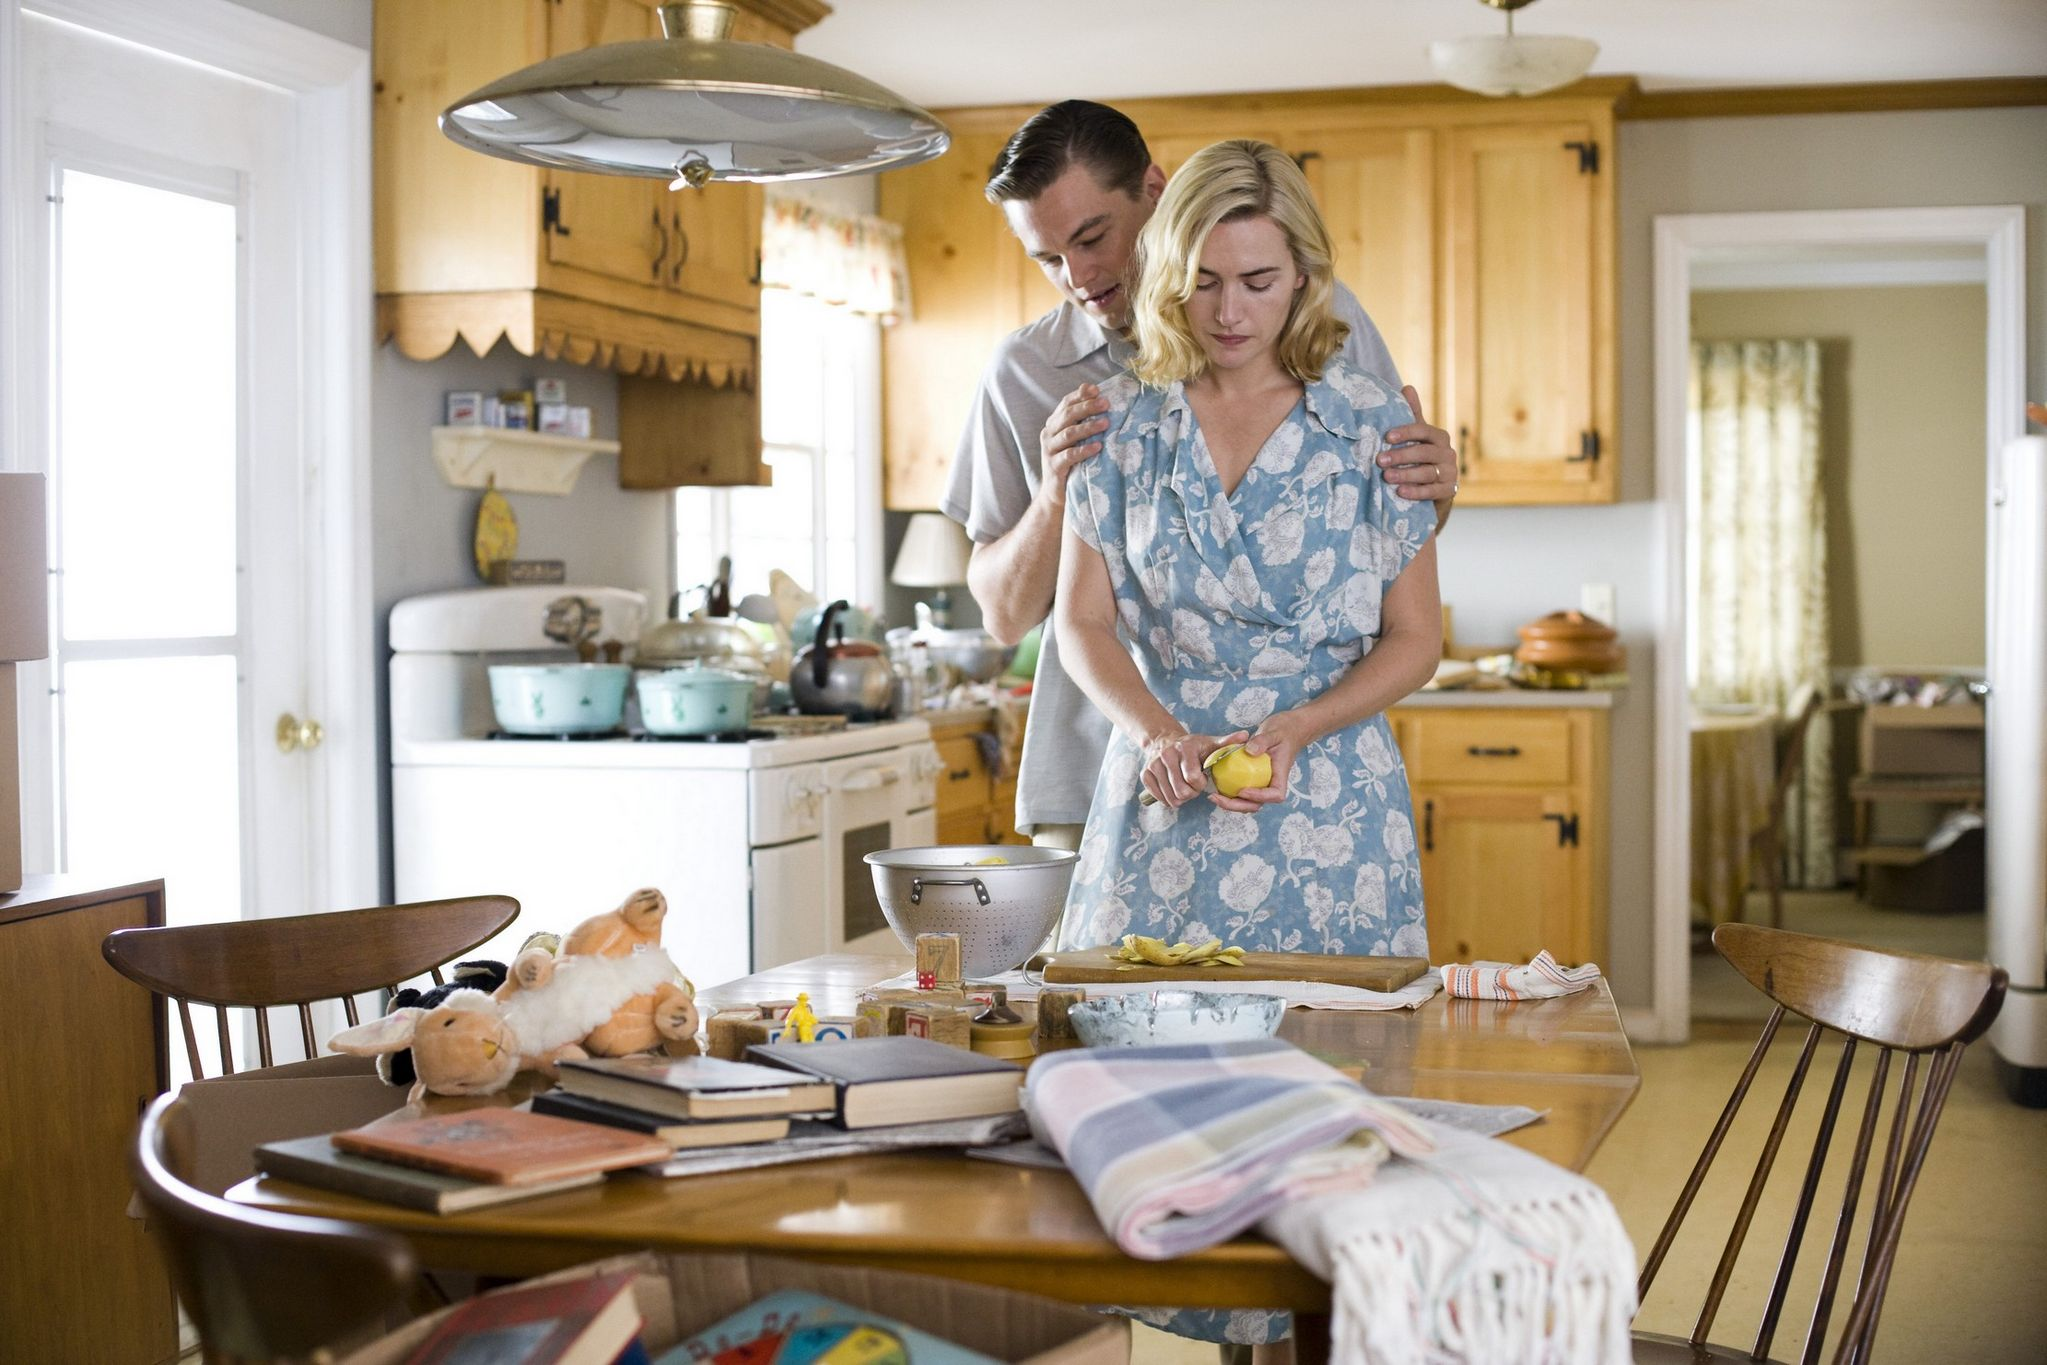 Revolutionary Road kate winslet and leonardo dicaprio